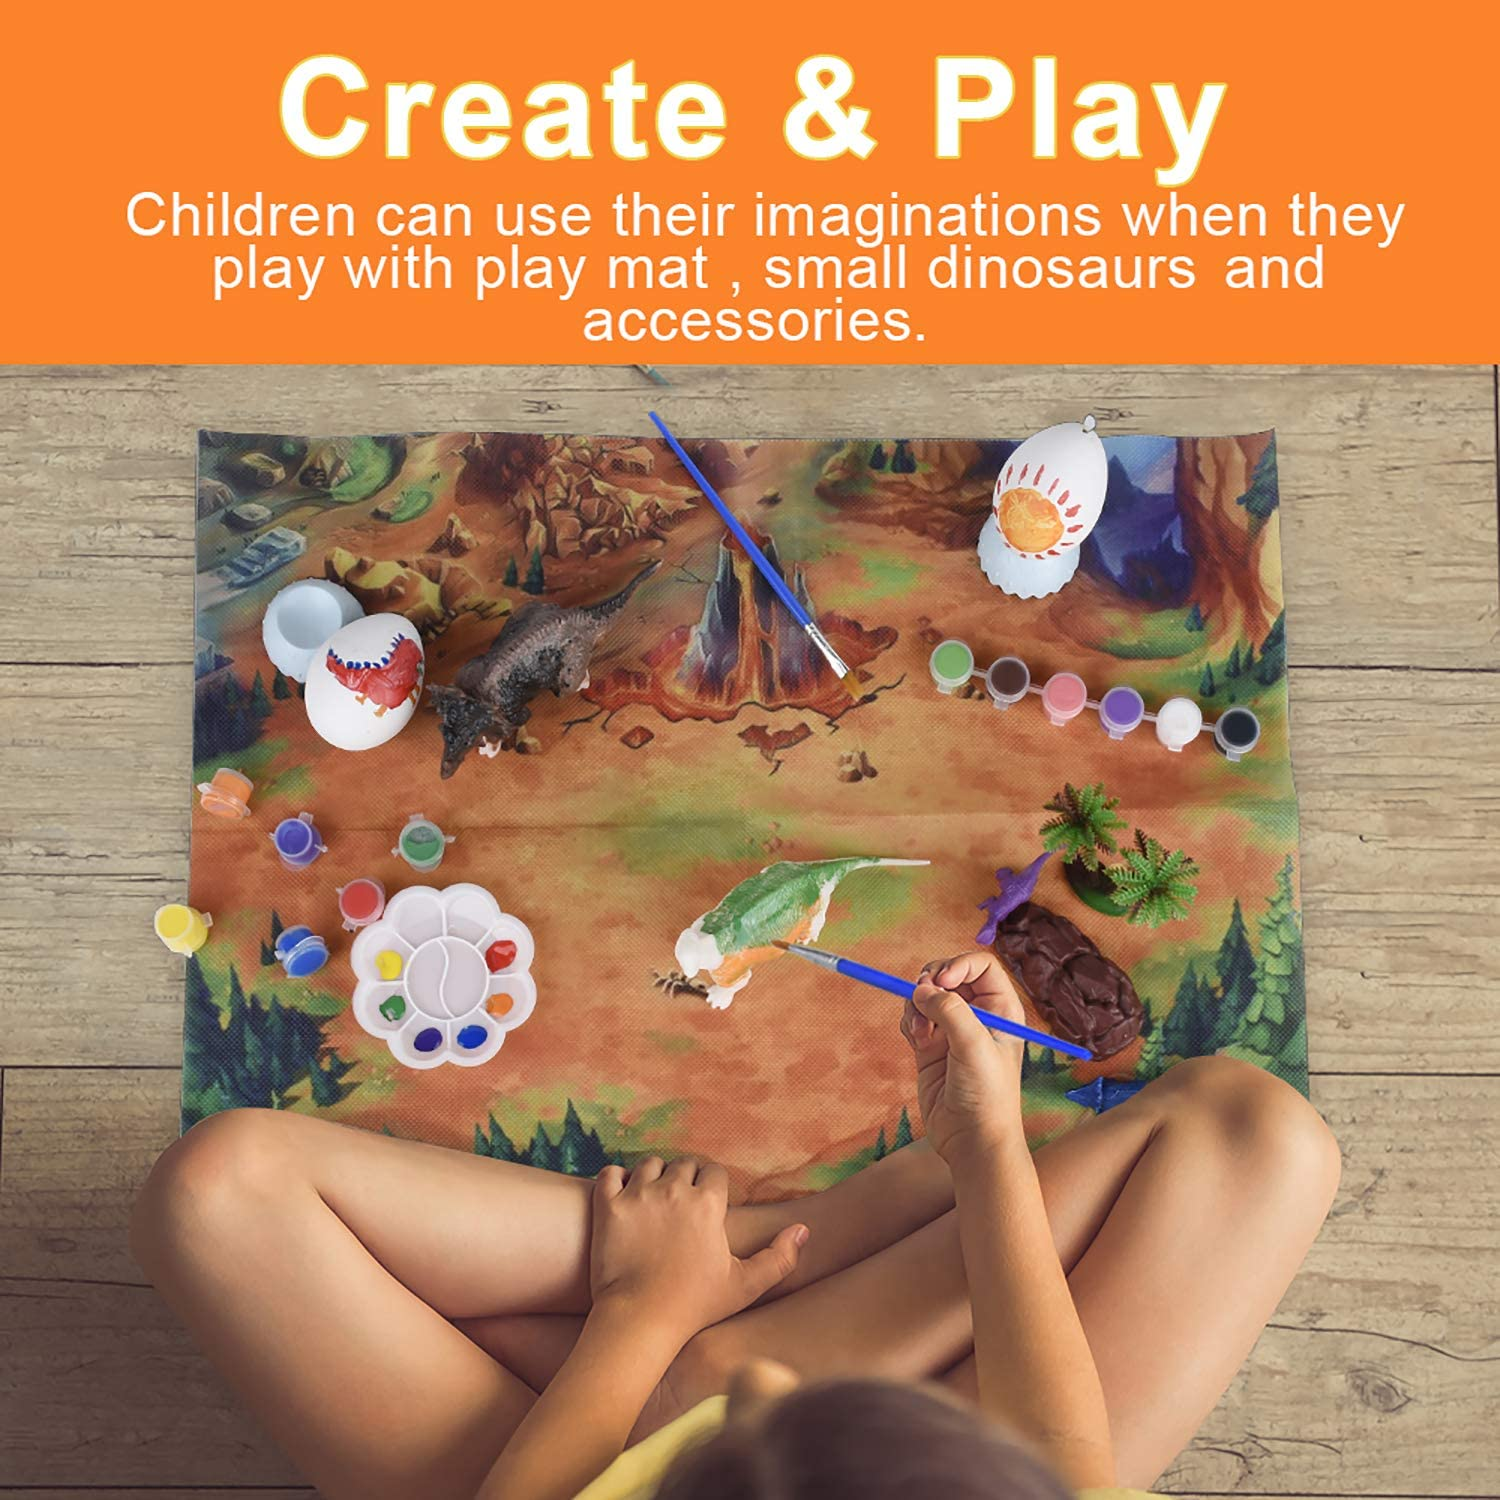 TITAIN GINDO Painting Your own Dinosaurs|Kids Dinosaurs Toys Art and Craft|Dinosaurs Art Supplies for Kids|Dinosaurs Kids Art Supplies Dinosaurs Crafts for Kids Age 3 4 5 6 7 8